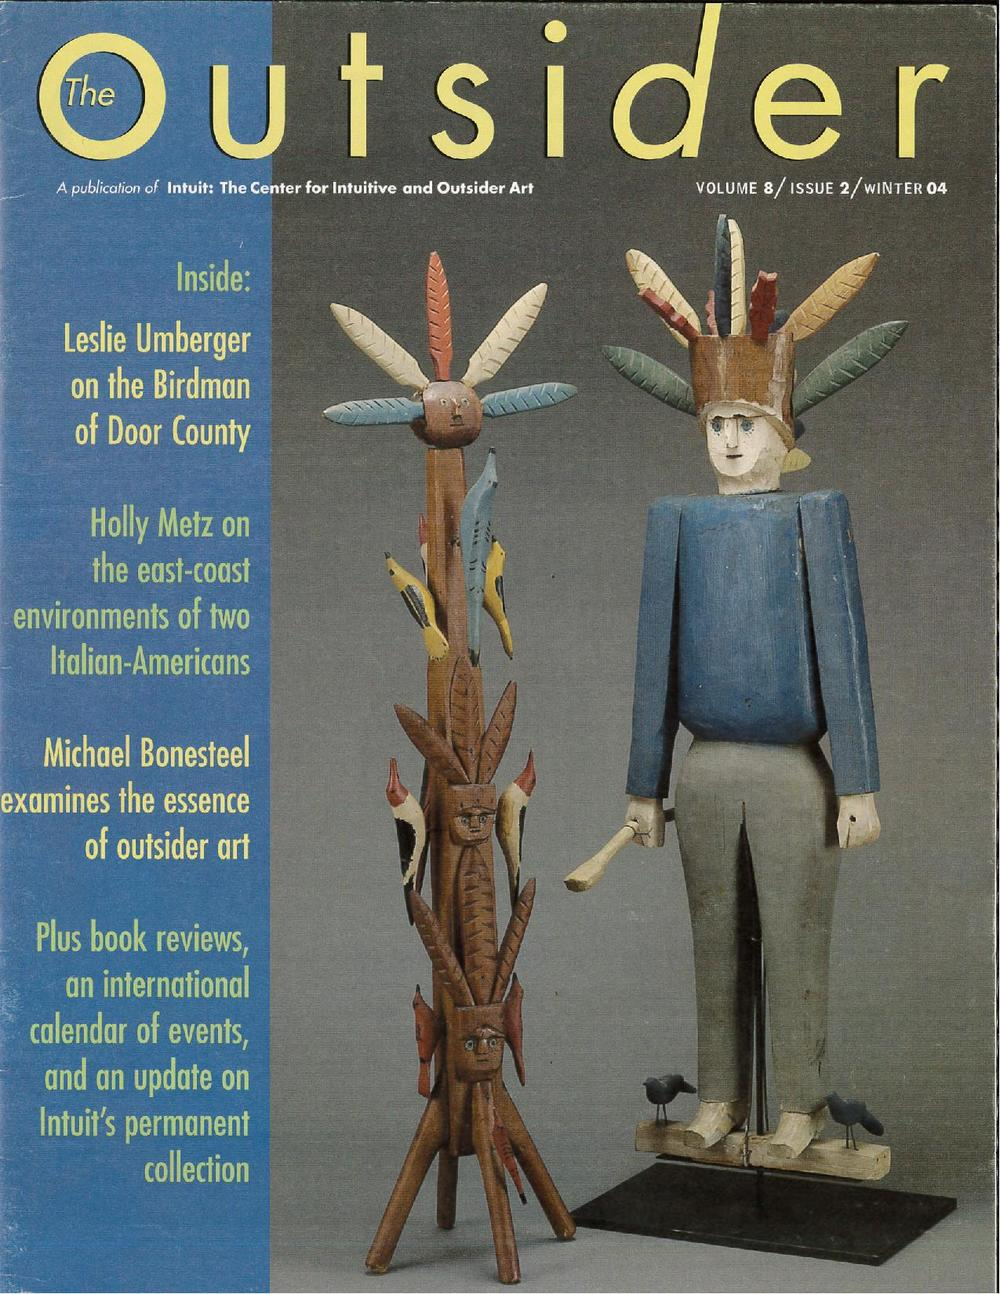 Volume 8 Issue 2 Winter 2004